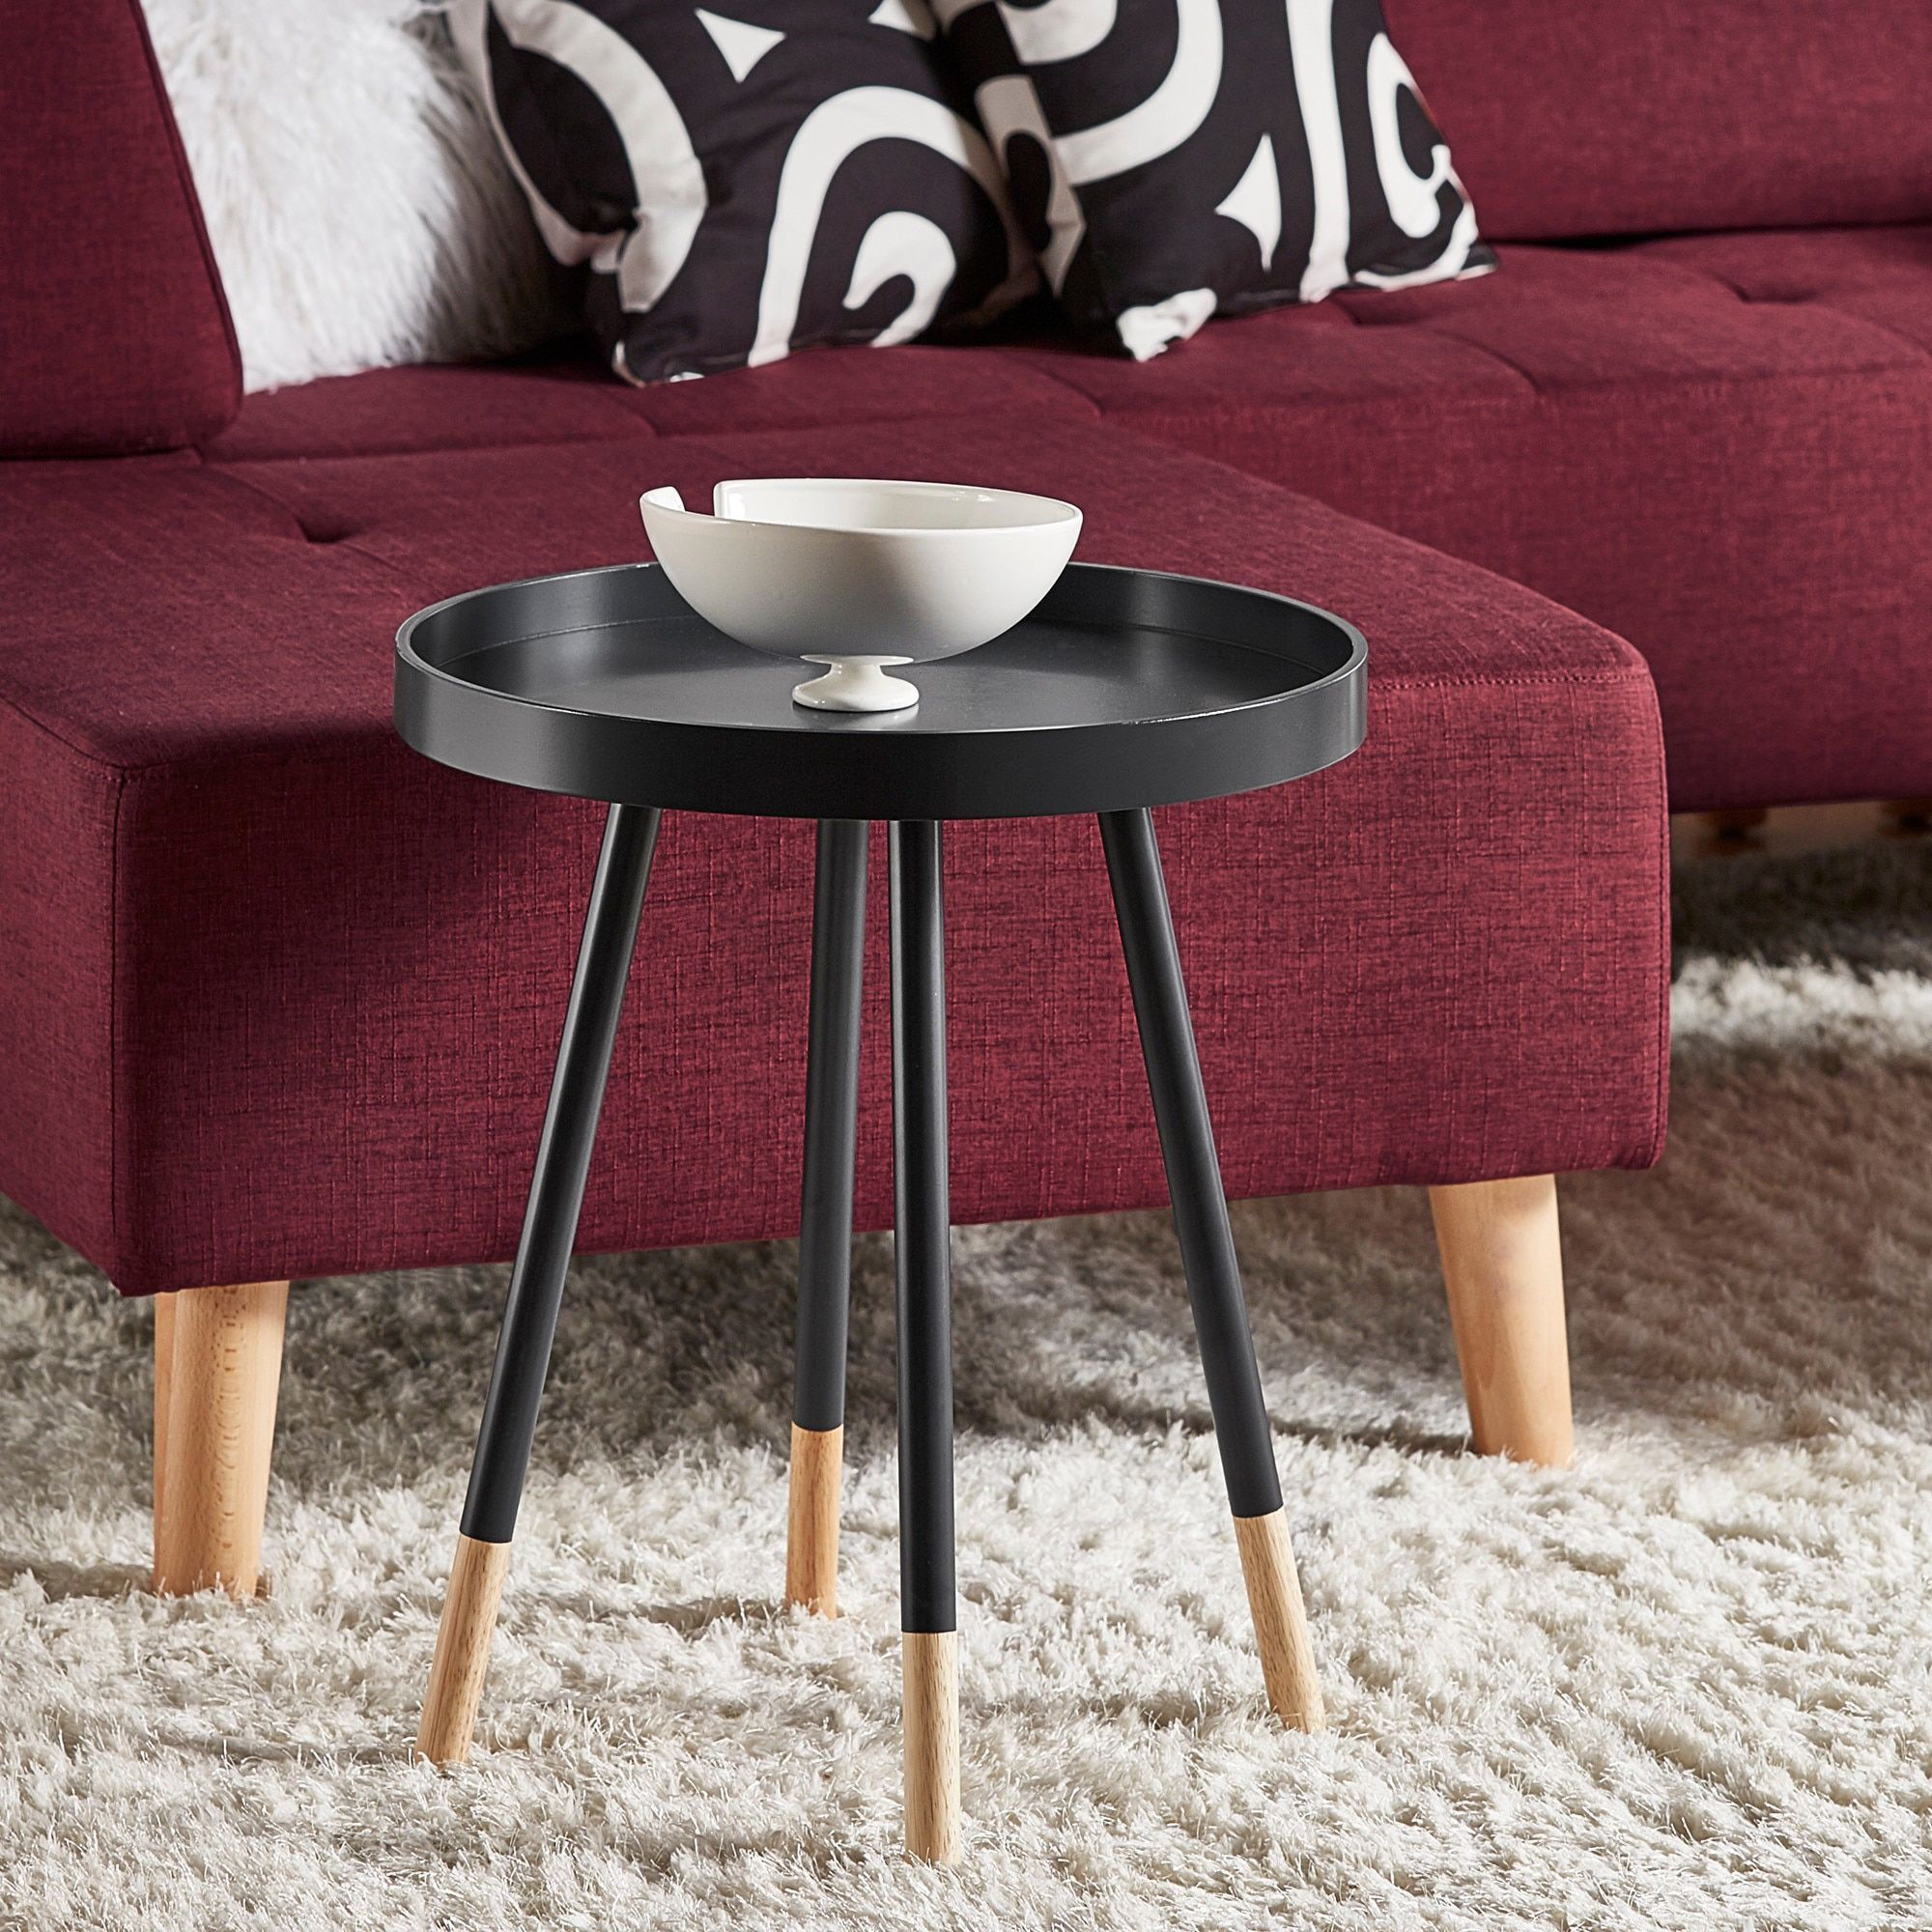 Marcella Paint-dipped Round Spindle Tray-top Side Table iNSPIRE Q Modern (